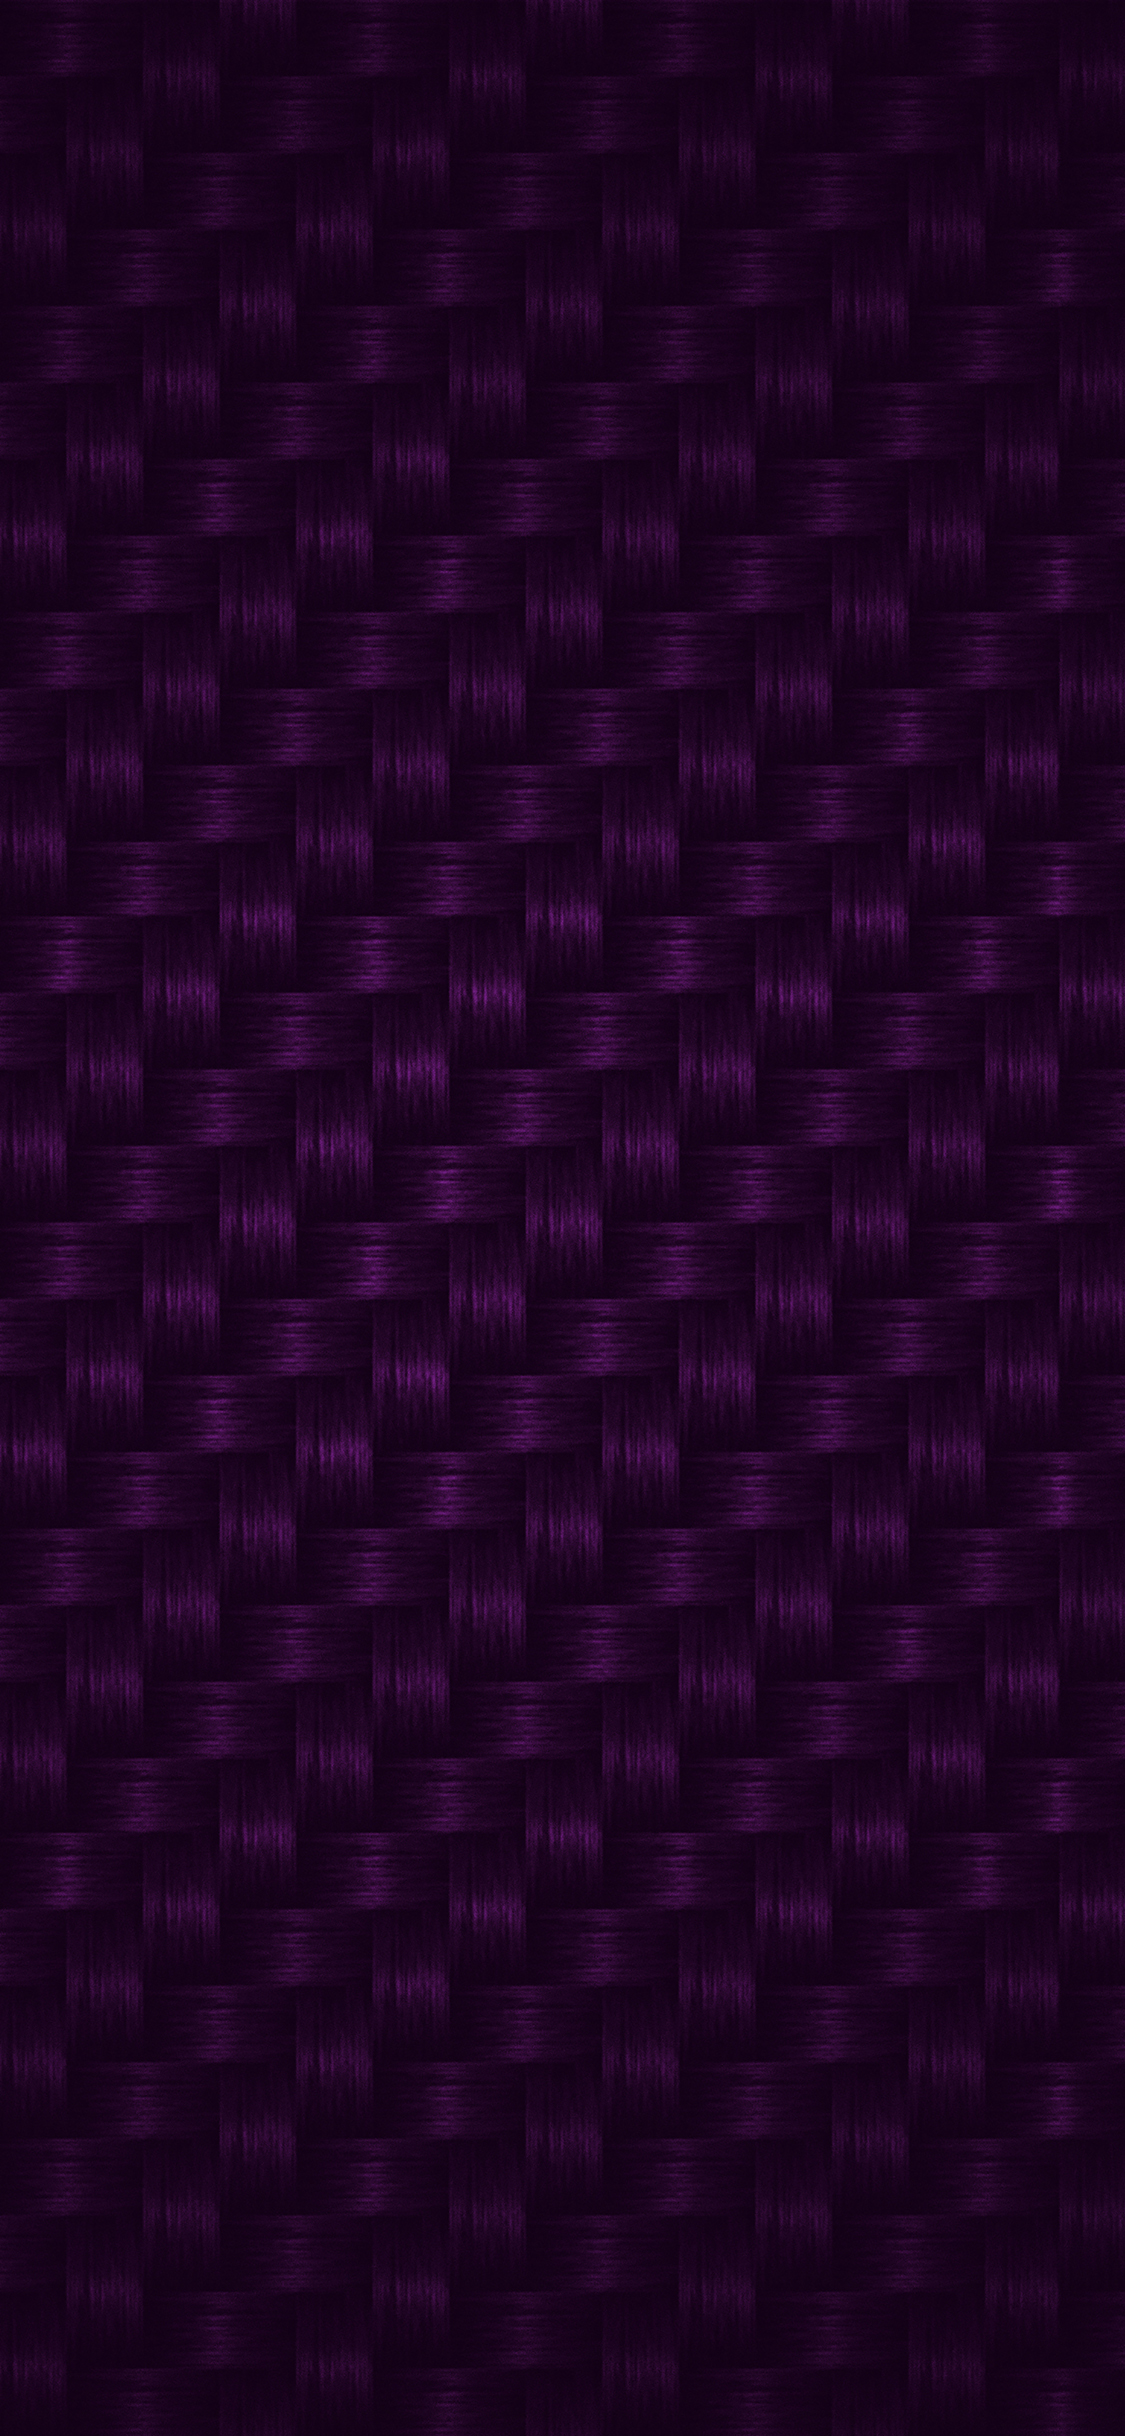 iPhoneXpapers.com-Apple-iPhone-wallpaper-ve39-cool-purple-background-pattern-abstract